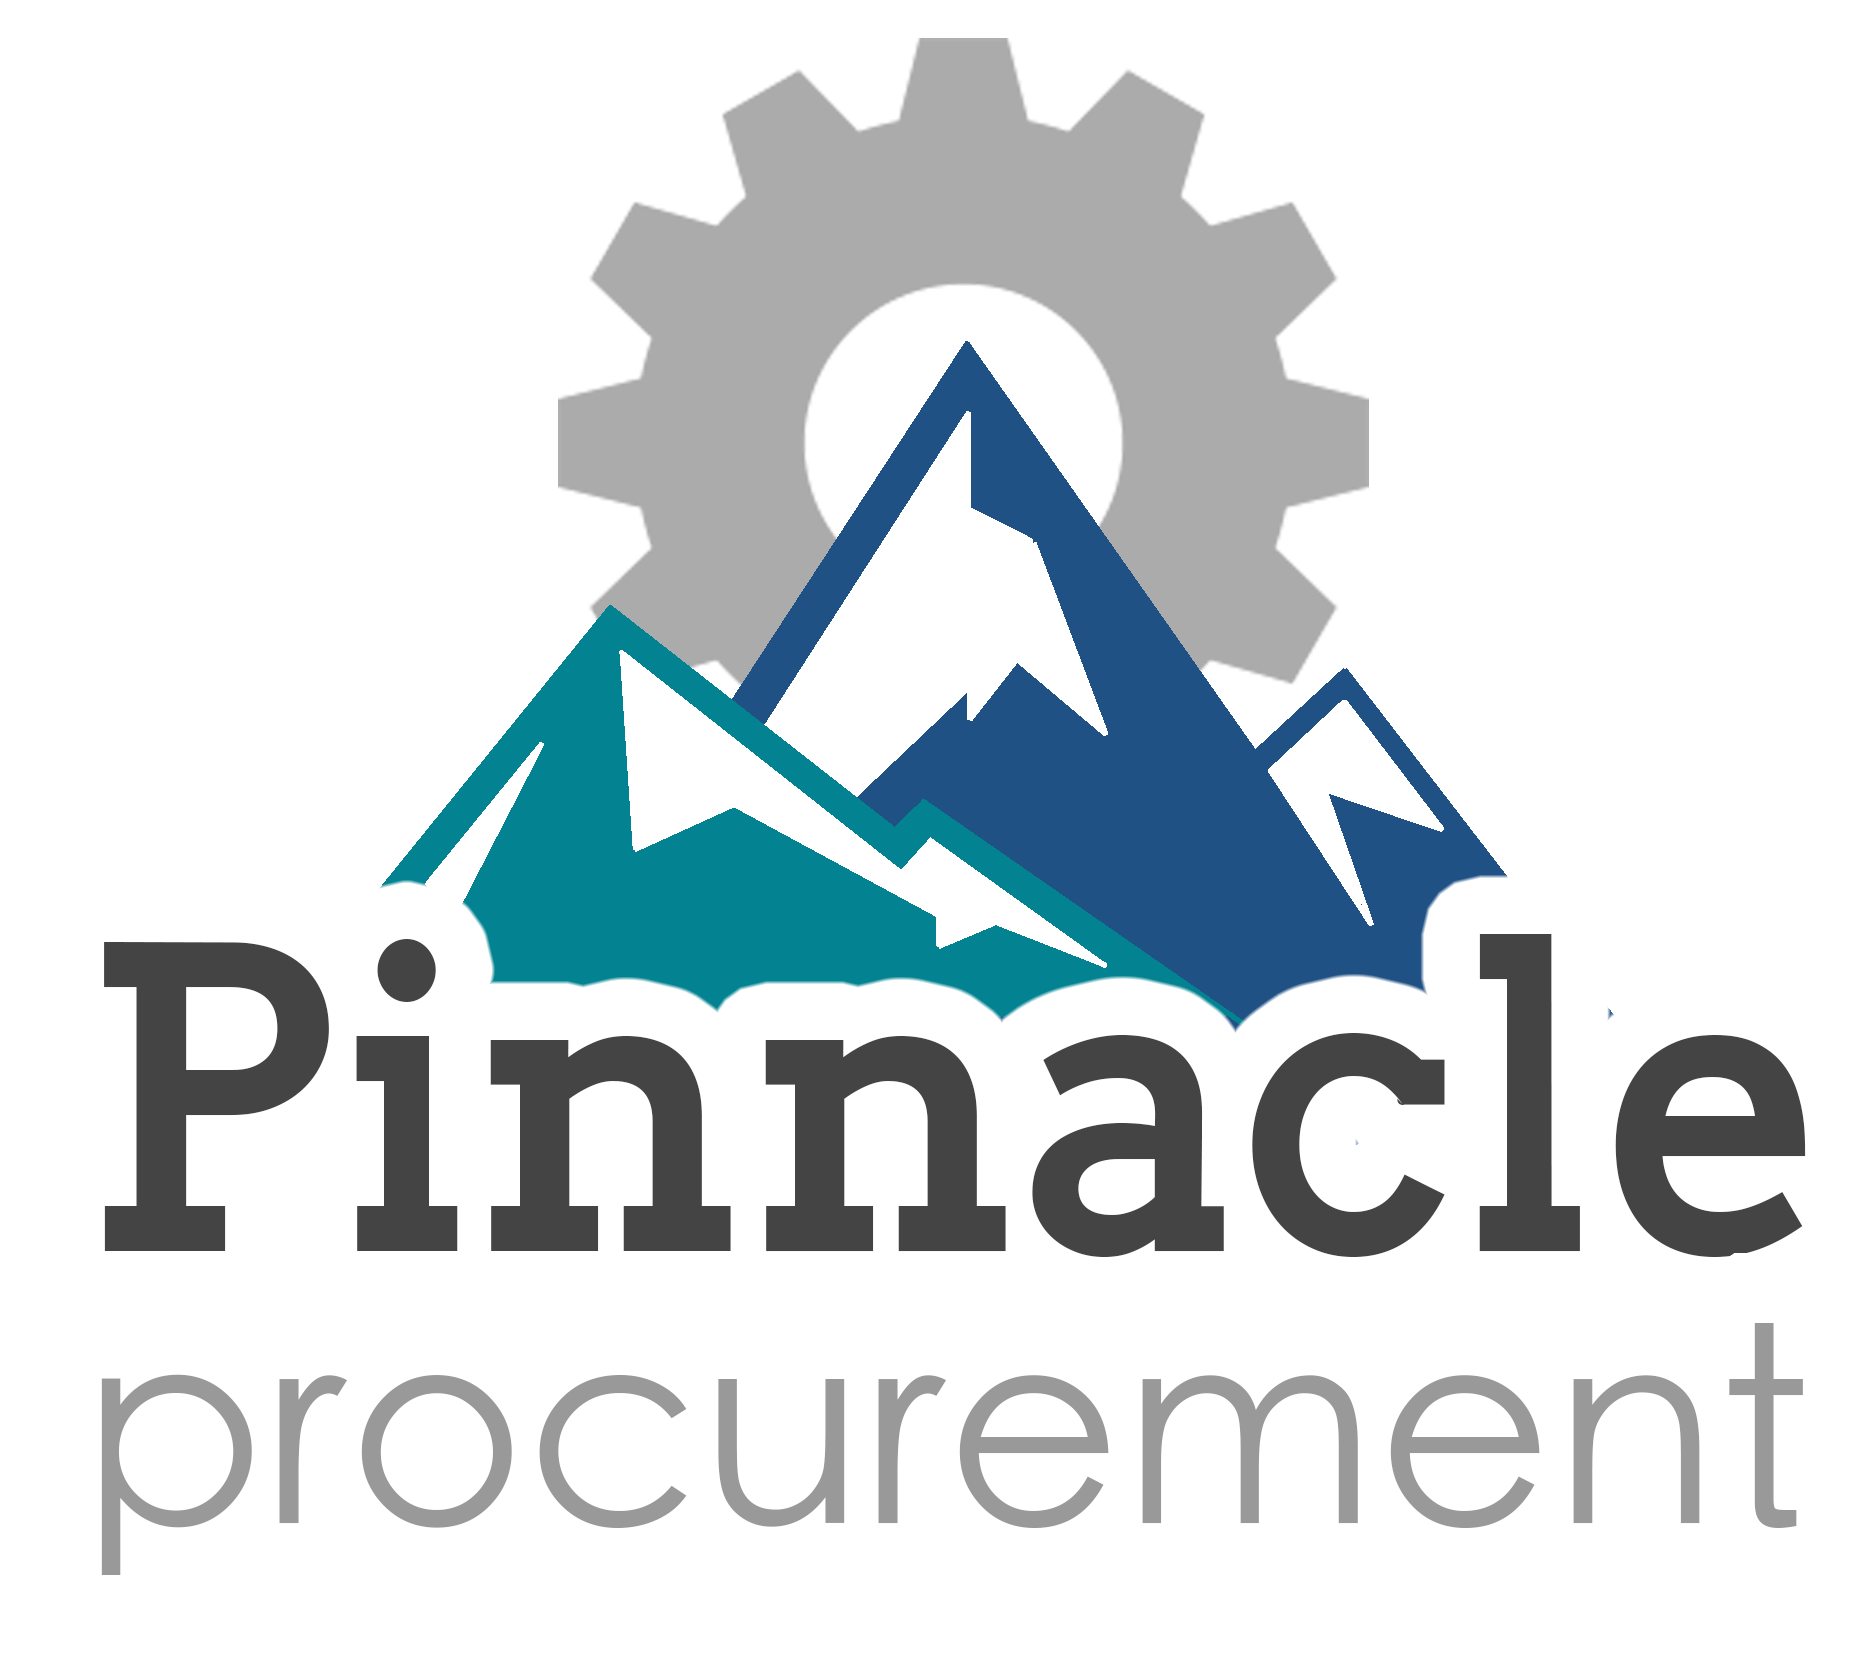 Pinnacle Procurement